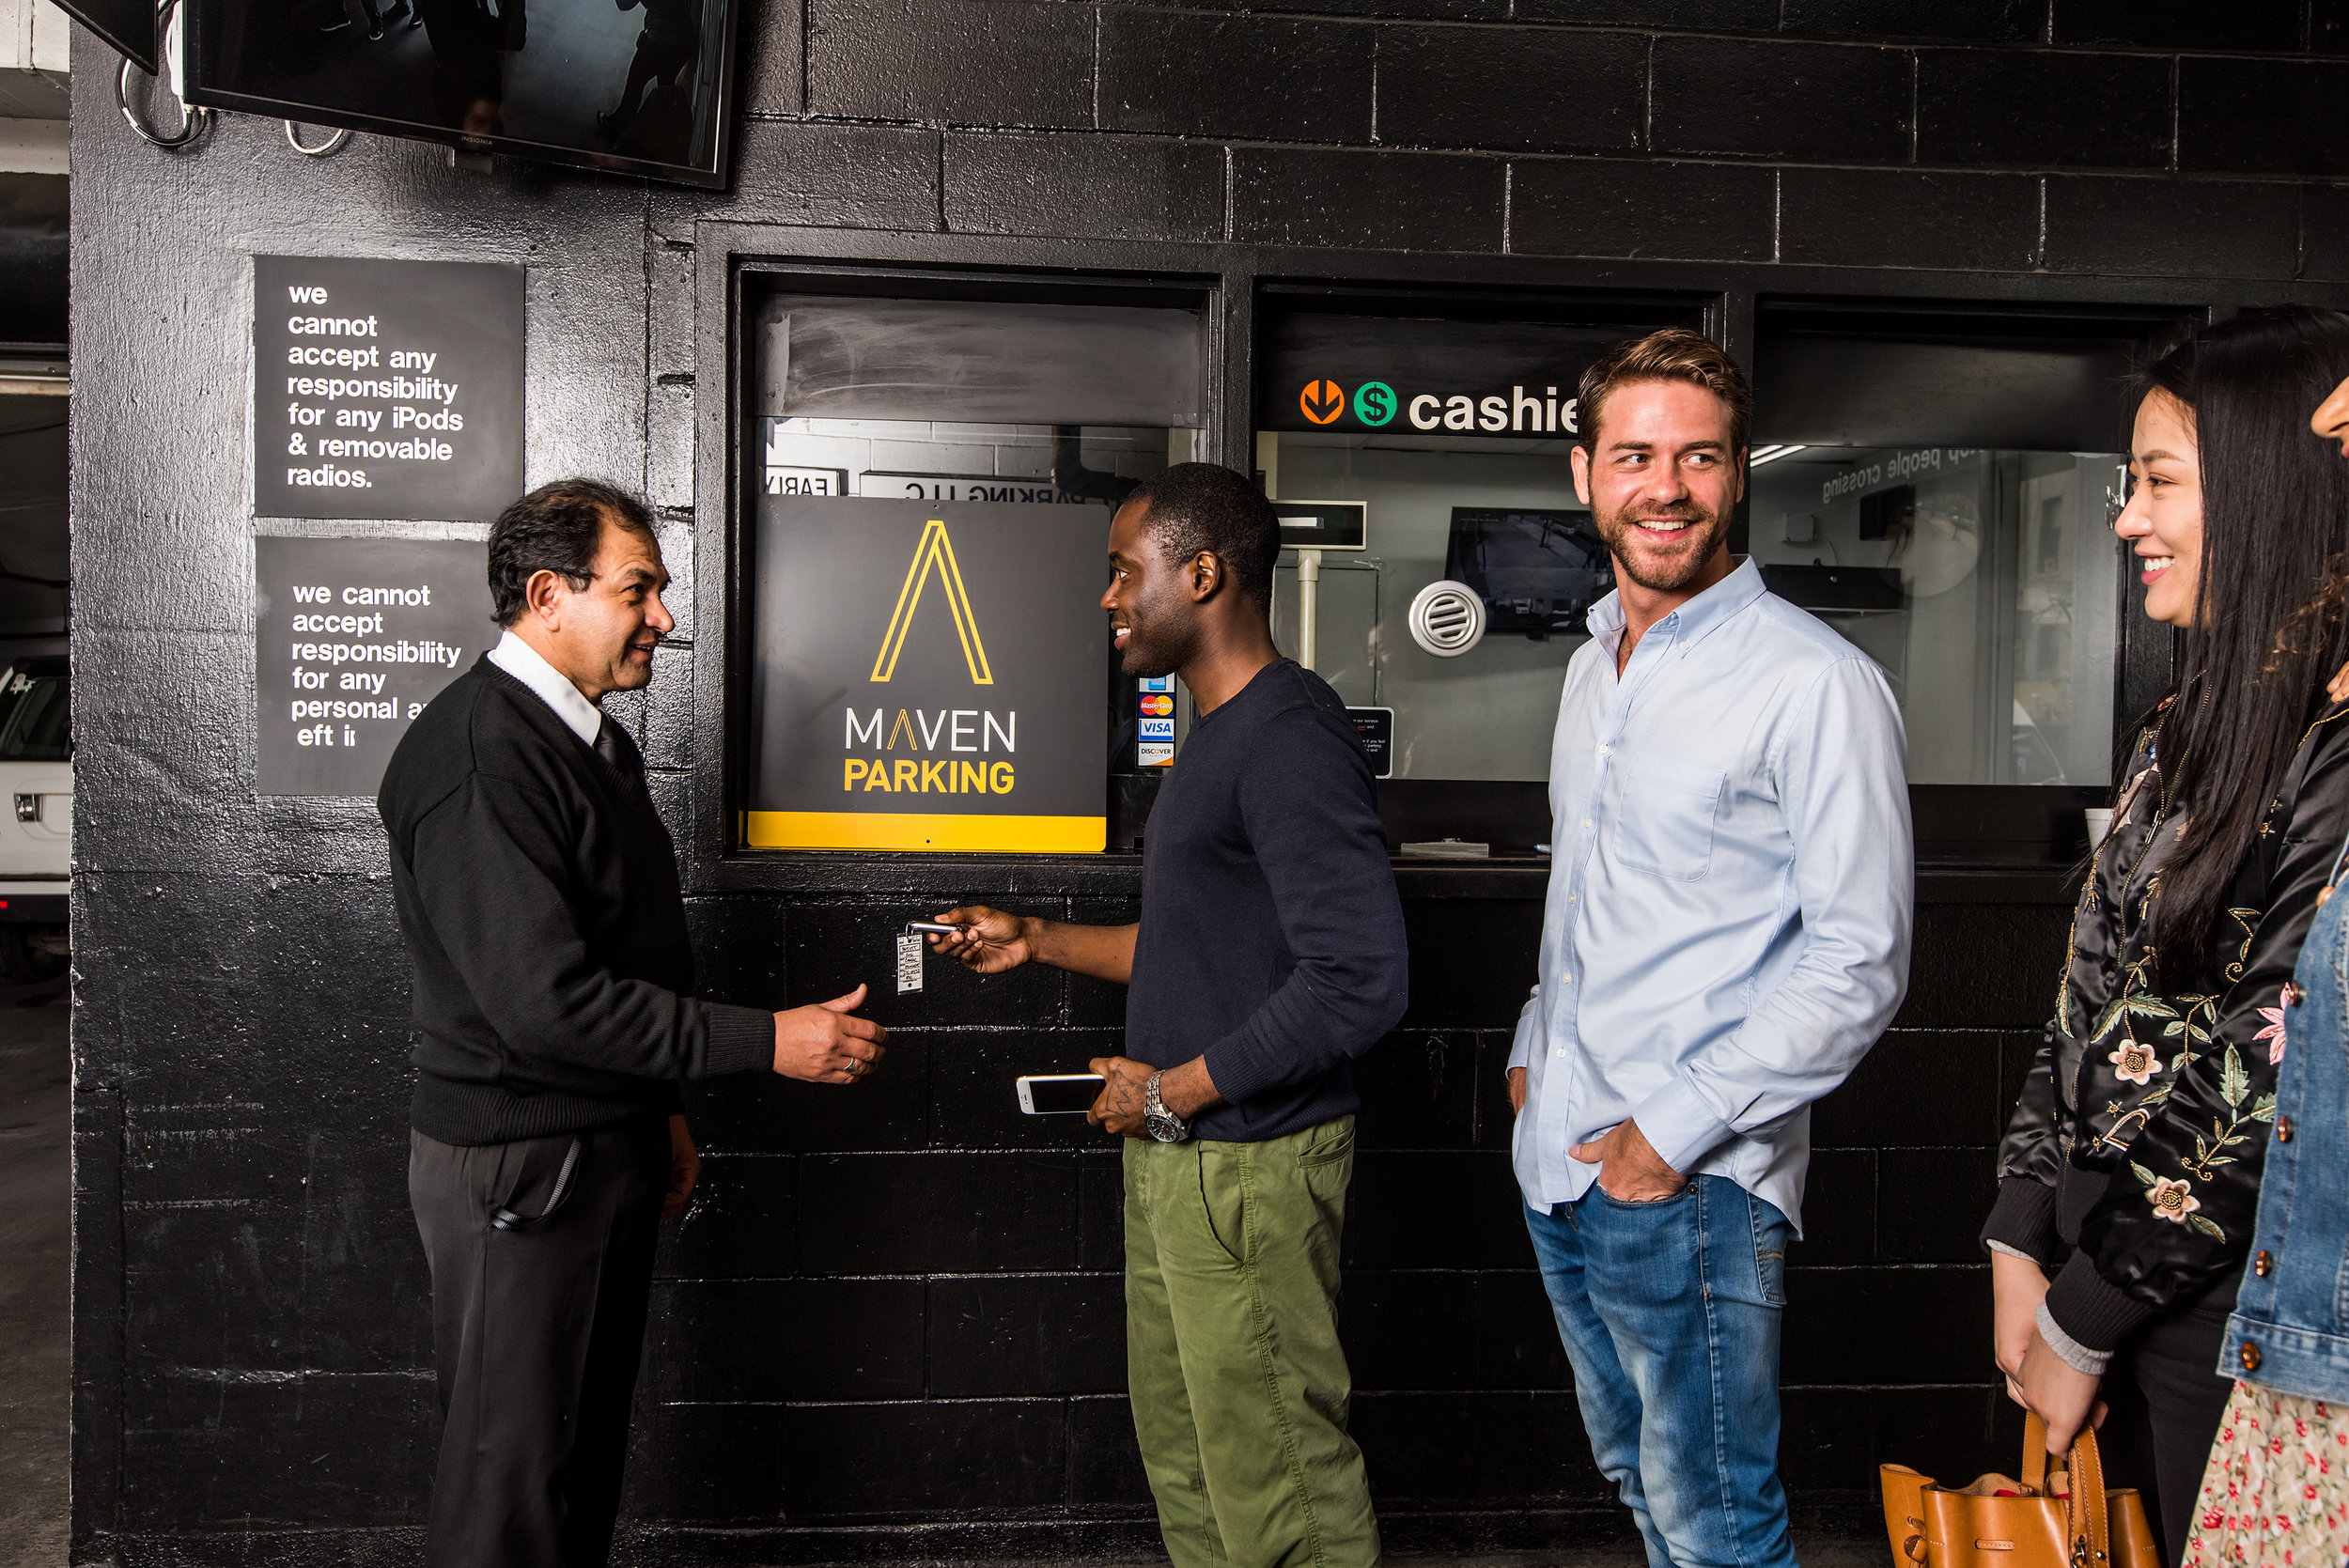 MAVEN, CAR SHARING - NICO CAST IN MAVEN'S COMMERCIALGeneral Motor's Maven announced the expansion of their operations to NYC and Nico was cast in its commercial.